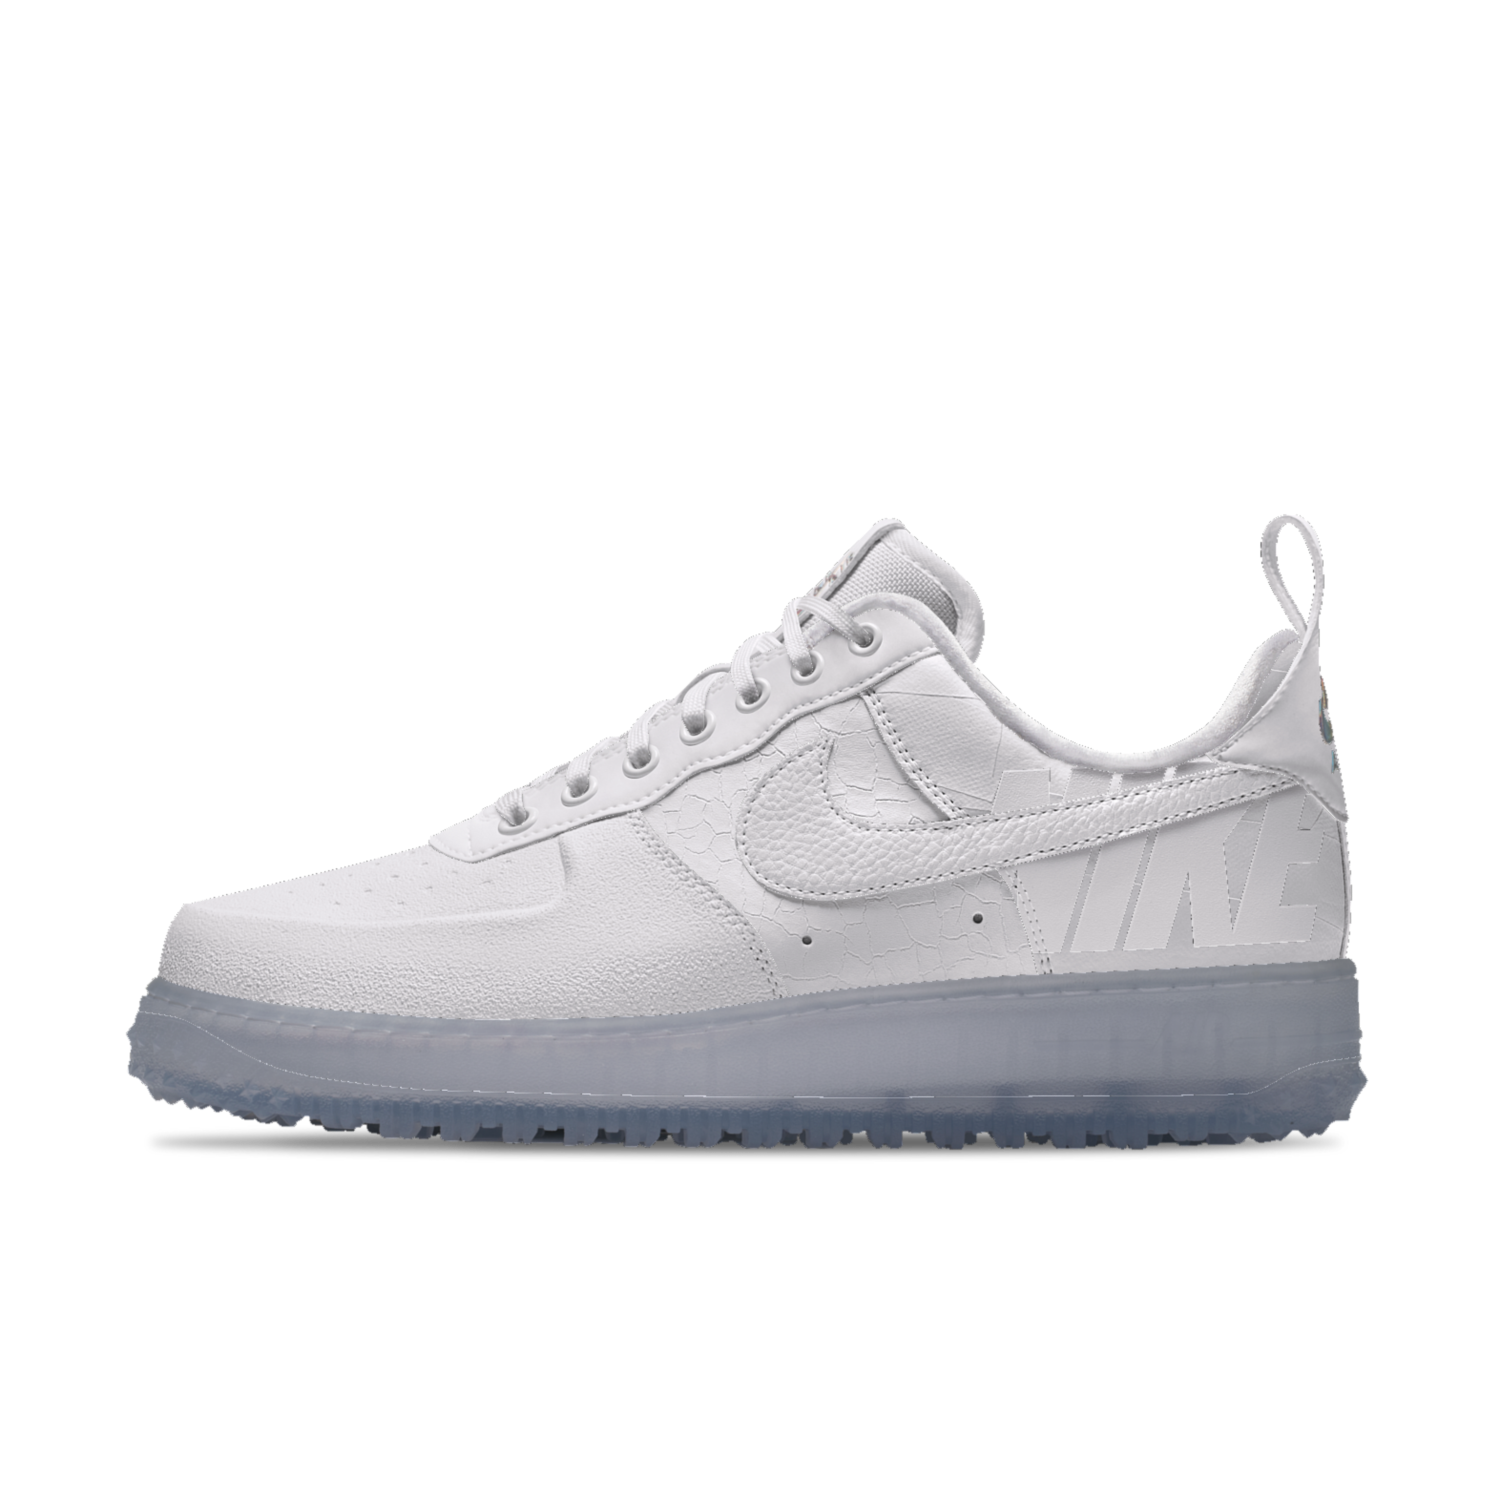 sports shoes 8d73f a7079 Nike Air Force 1 Low iD Winter White Shoe. Nike.com